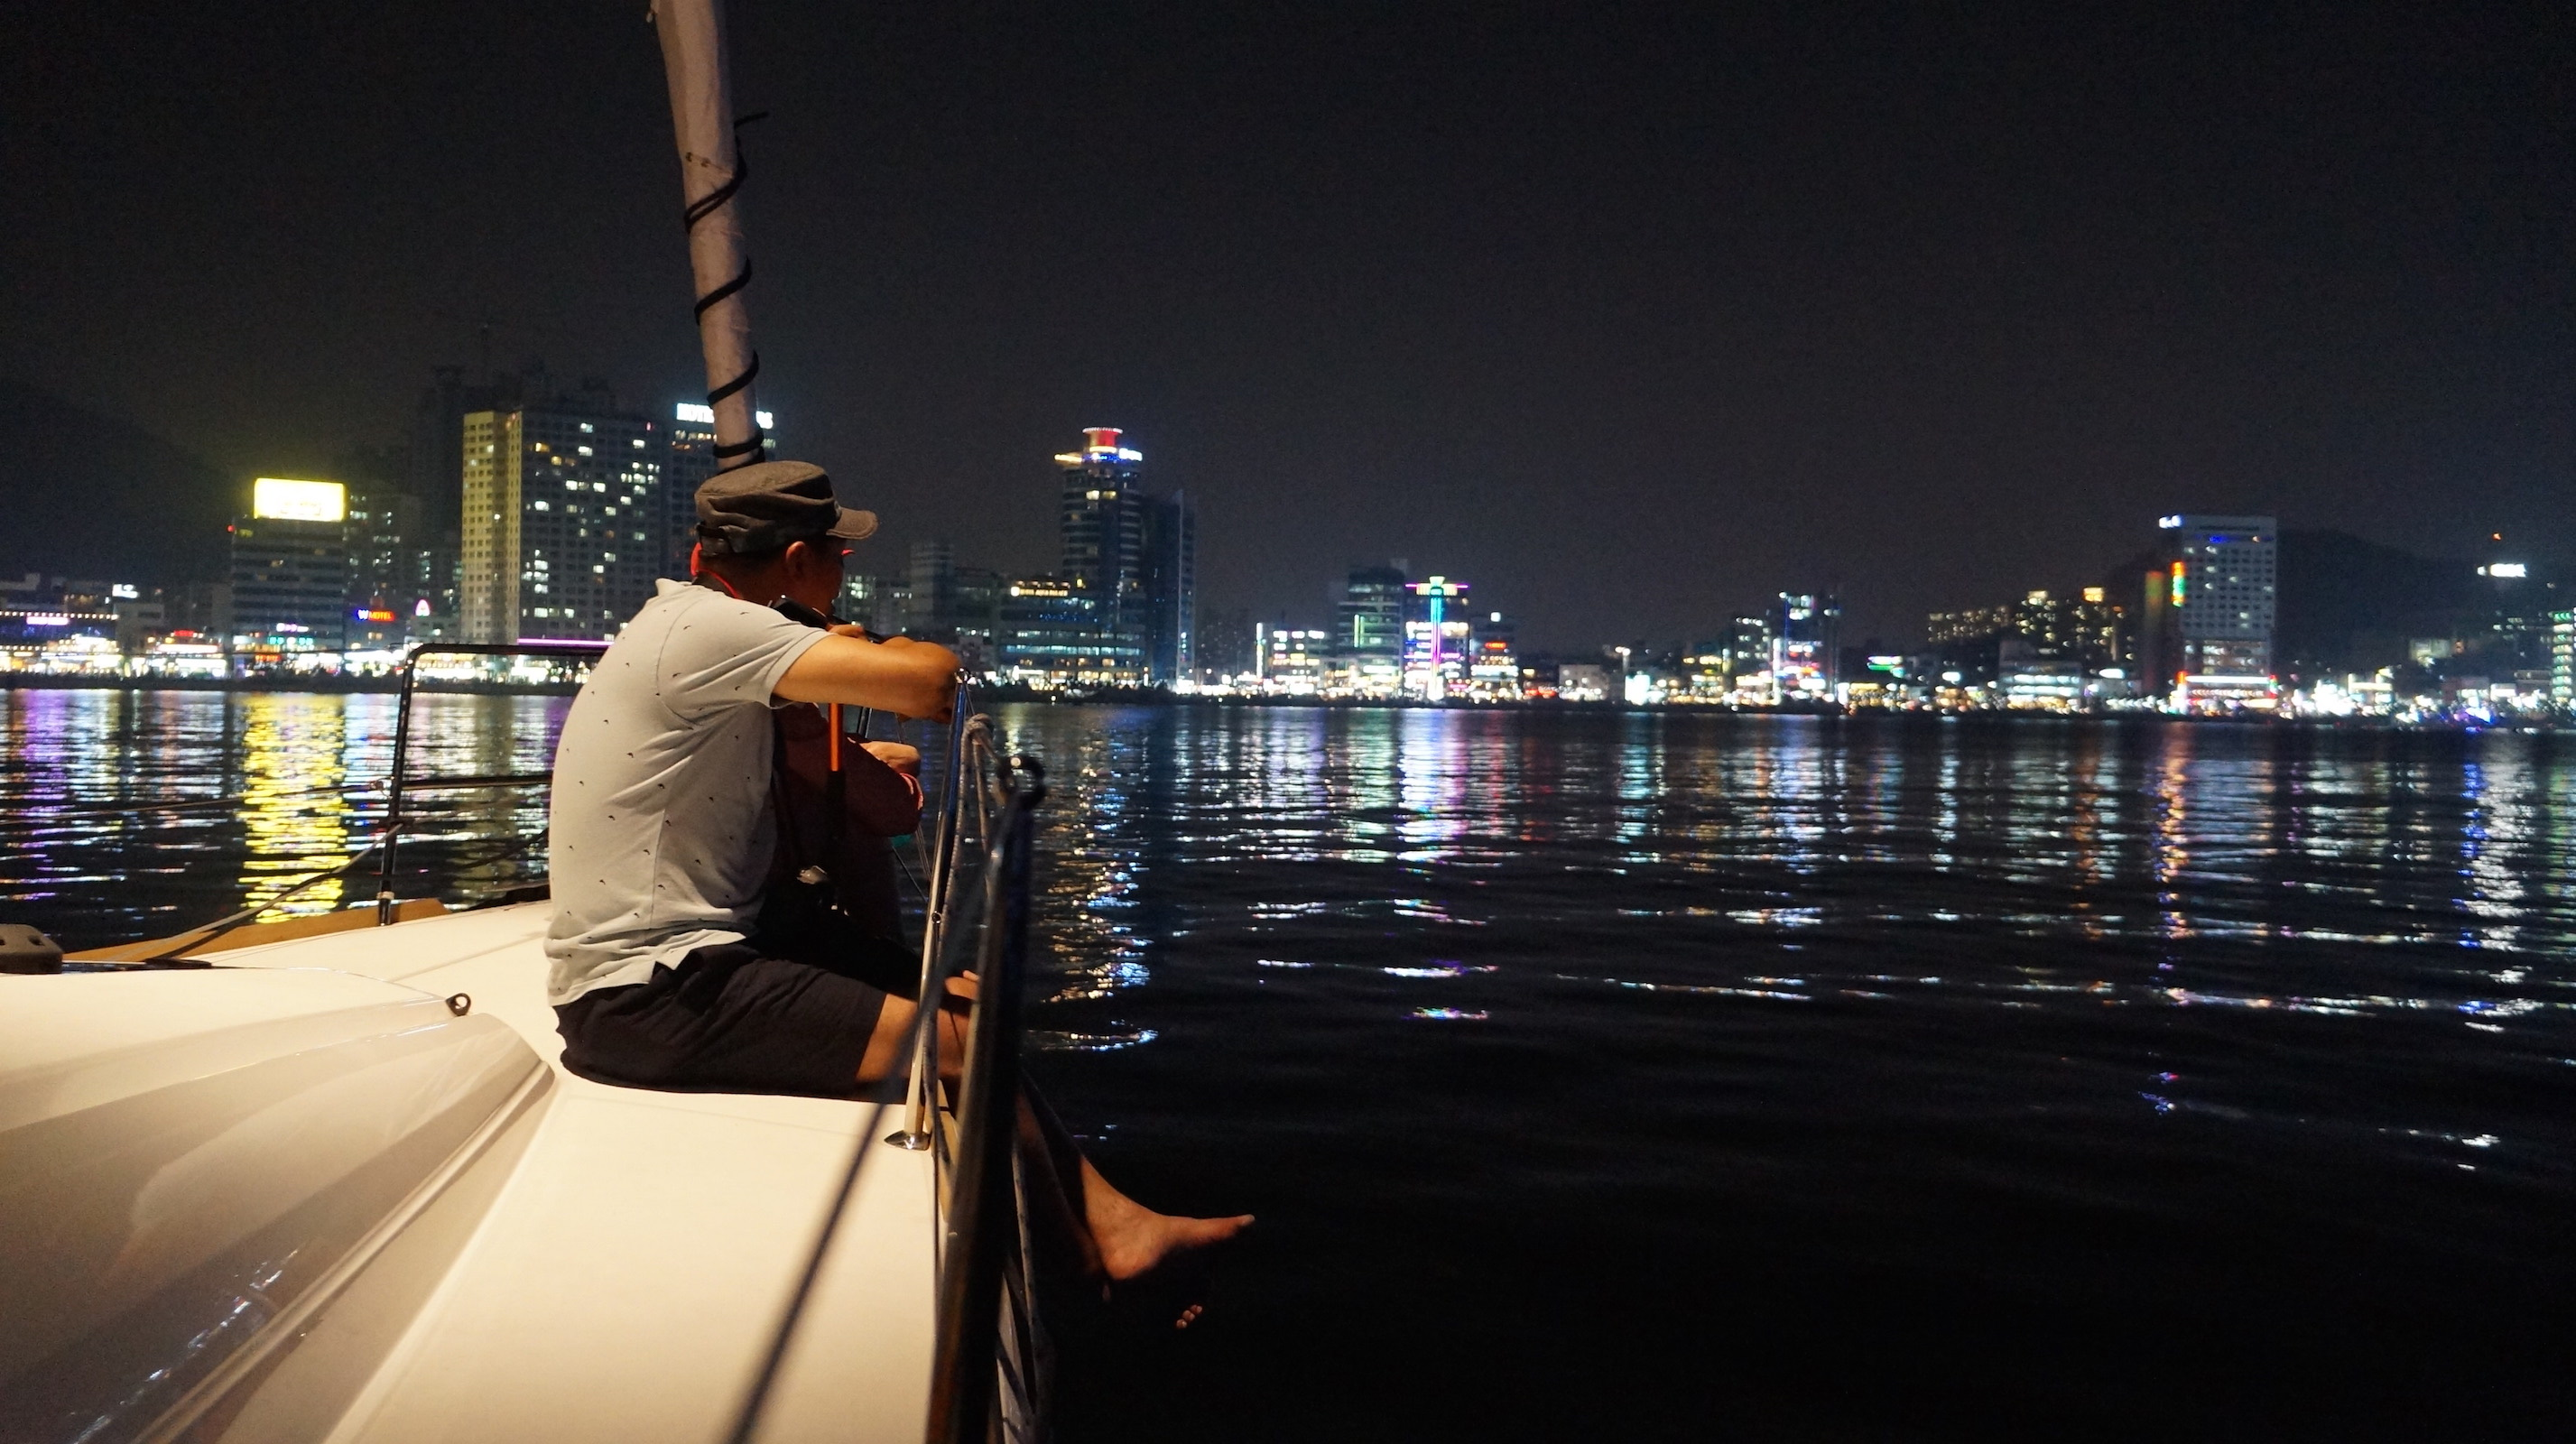 Nighttime Yacht Cruise in Busan